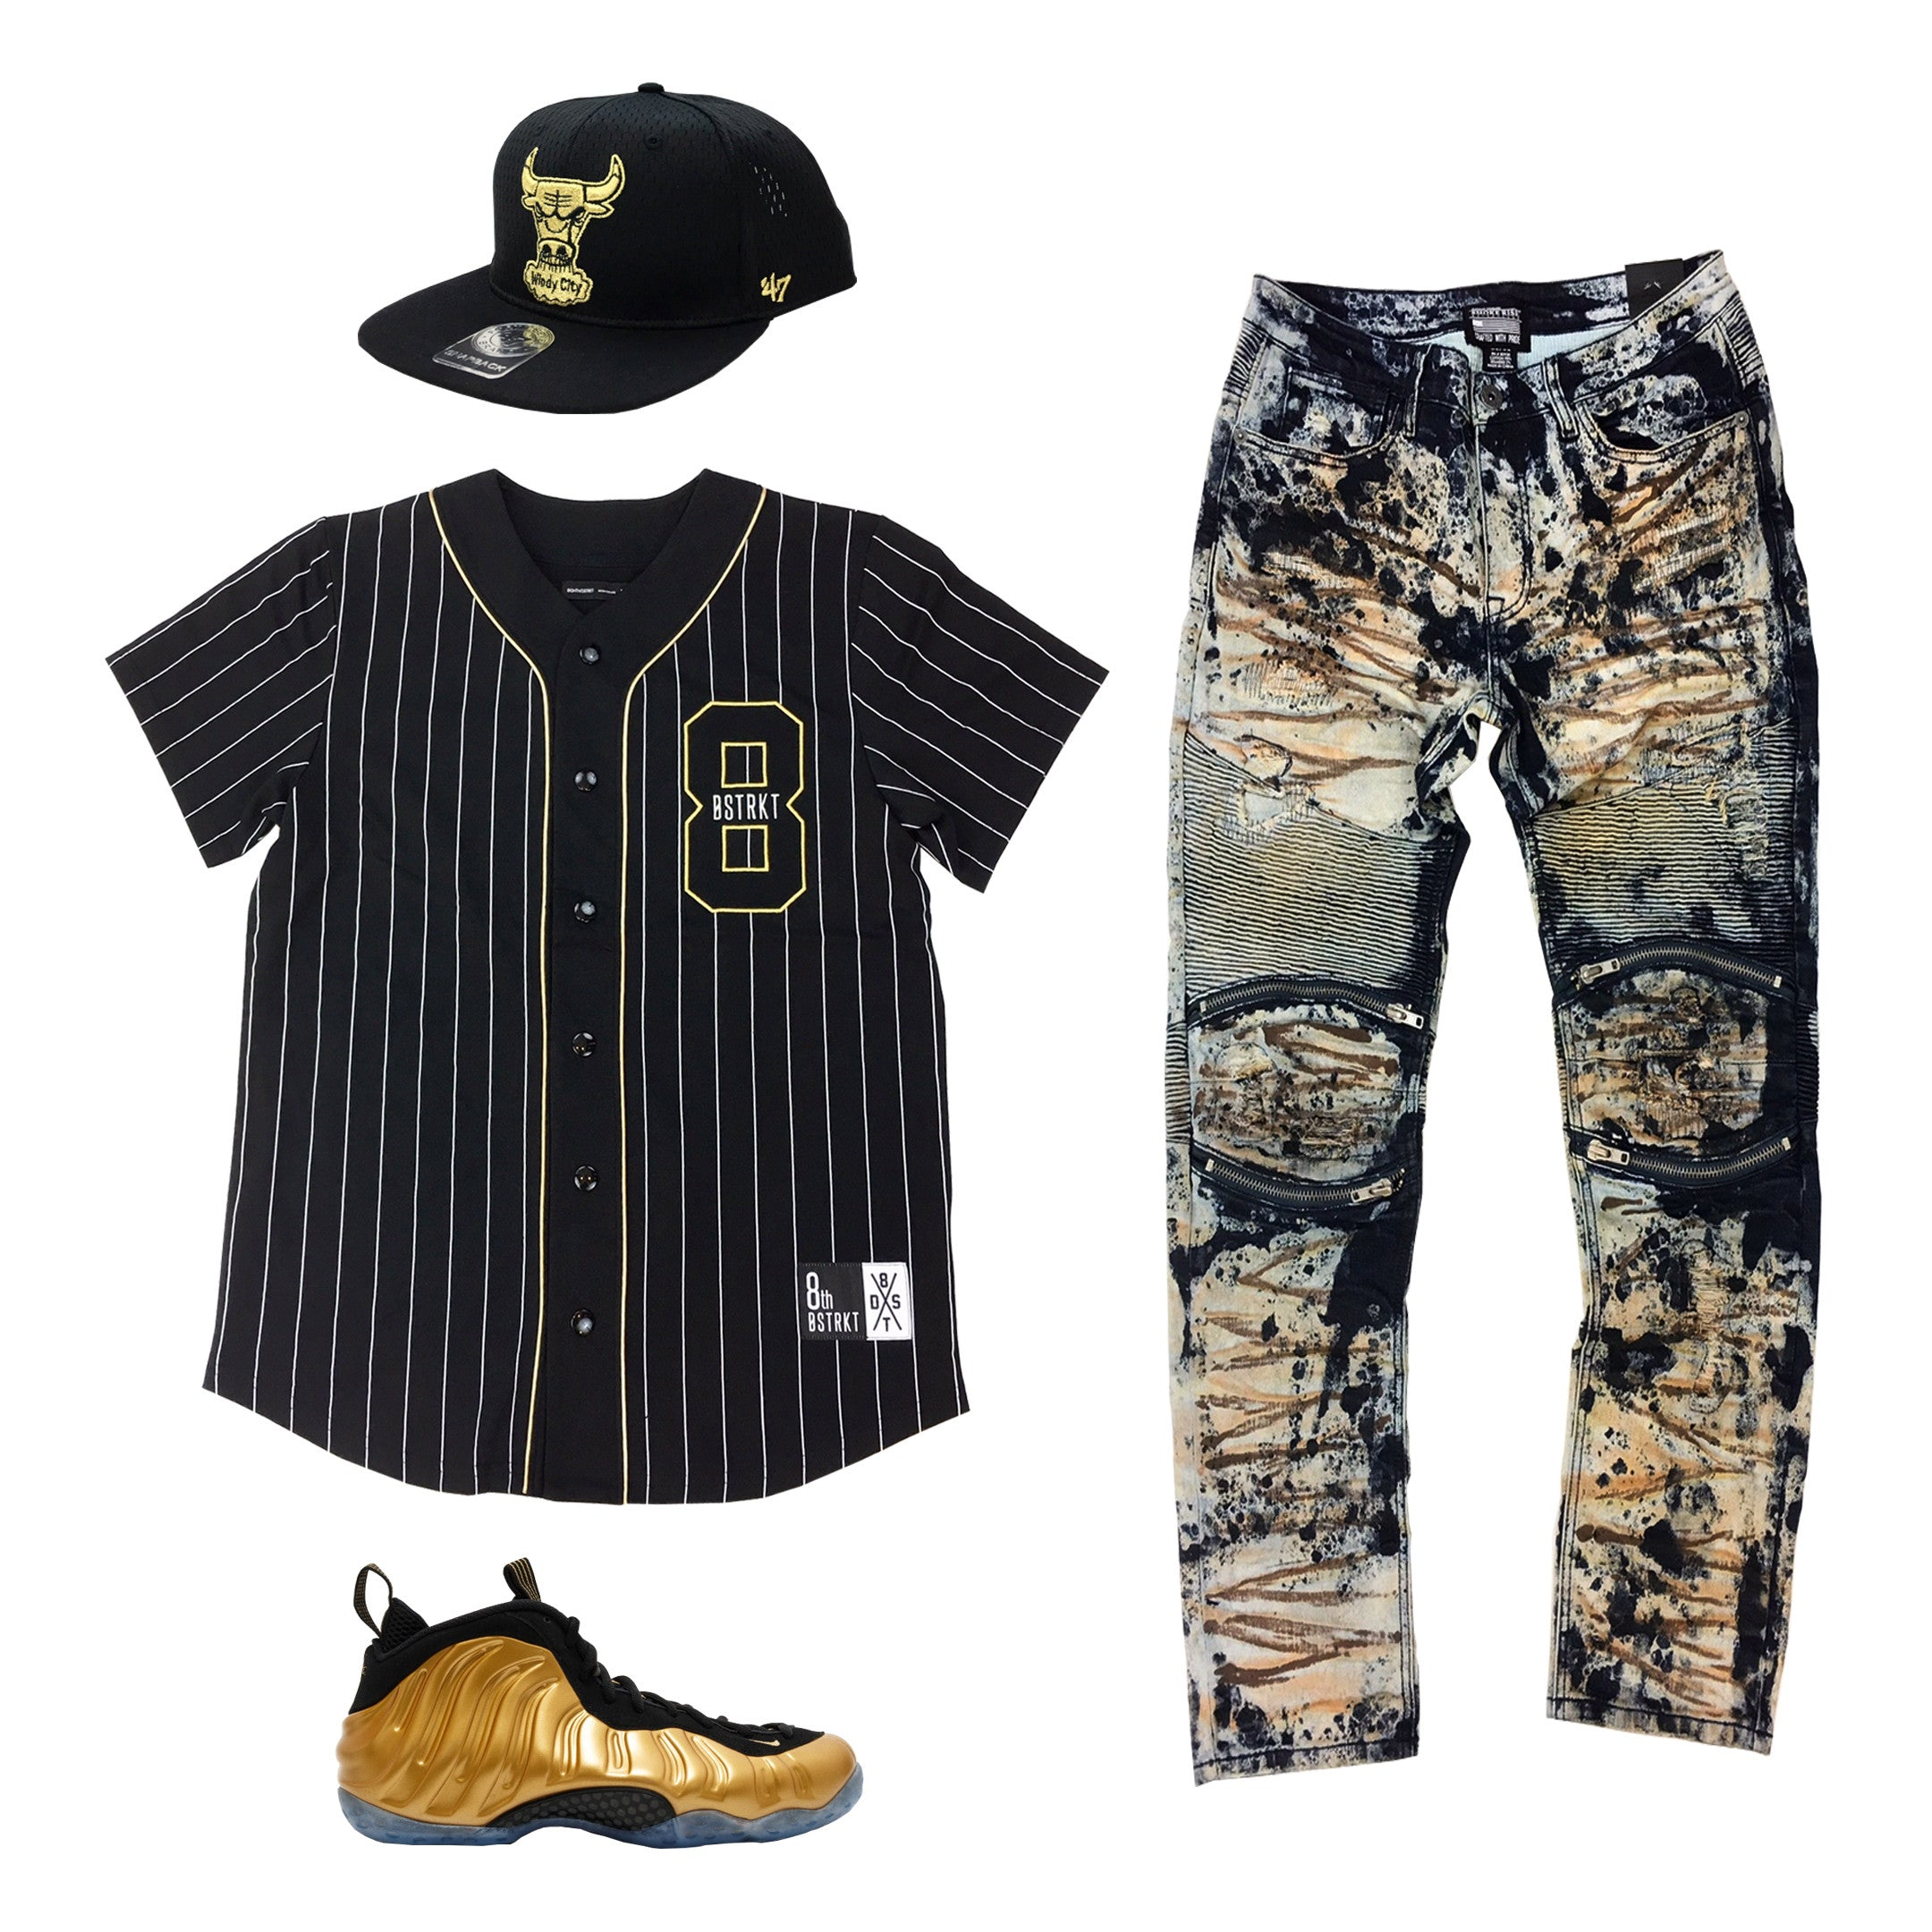 Nike Foamposite One Metallic Gold Outfit - Fashion Landmarks